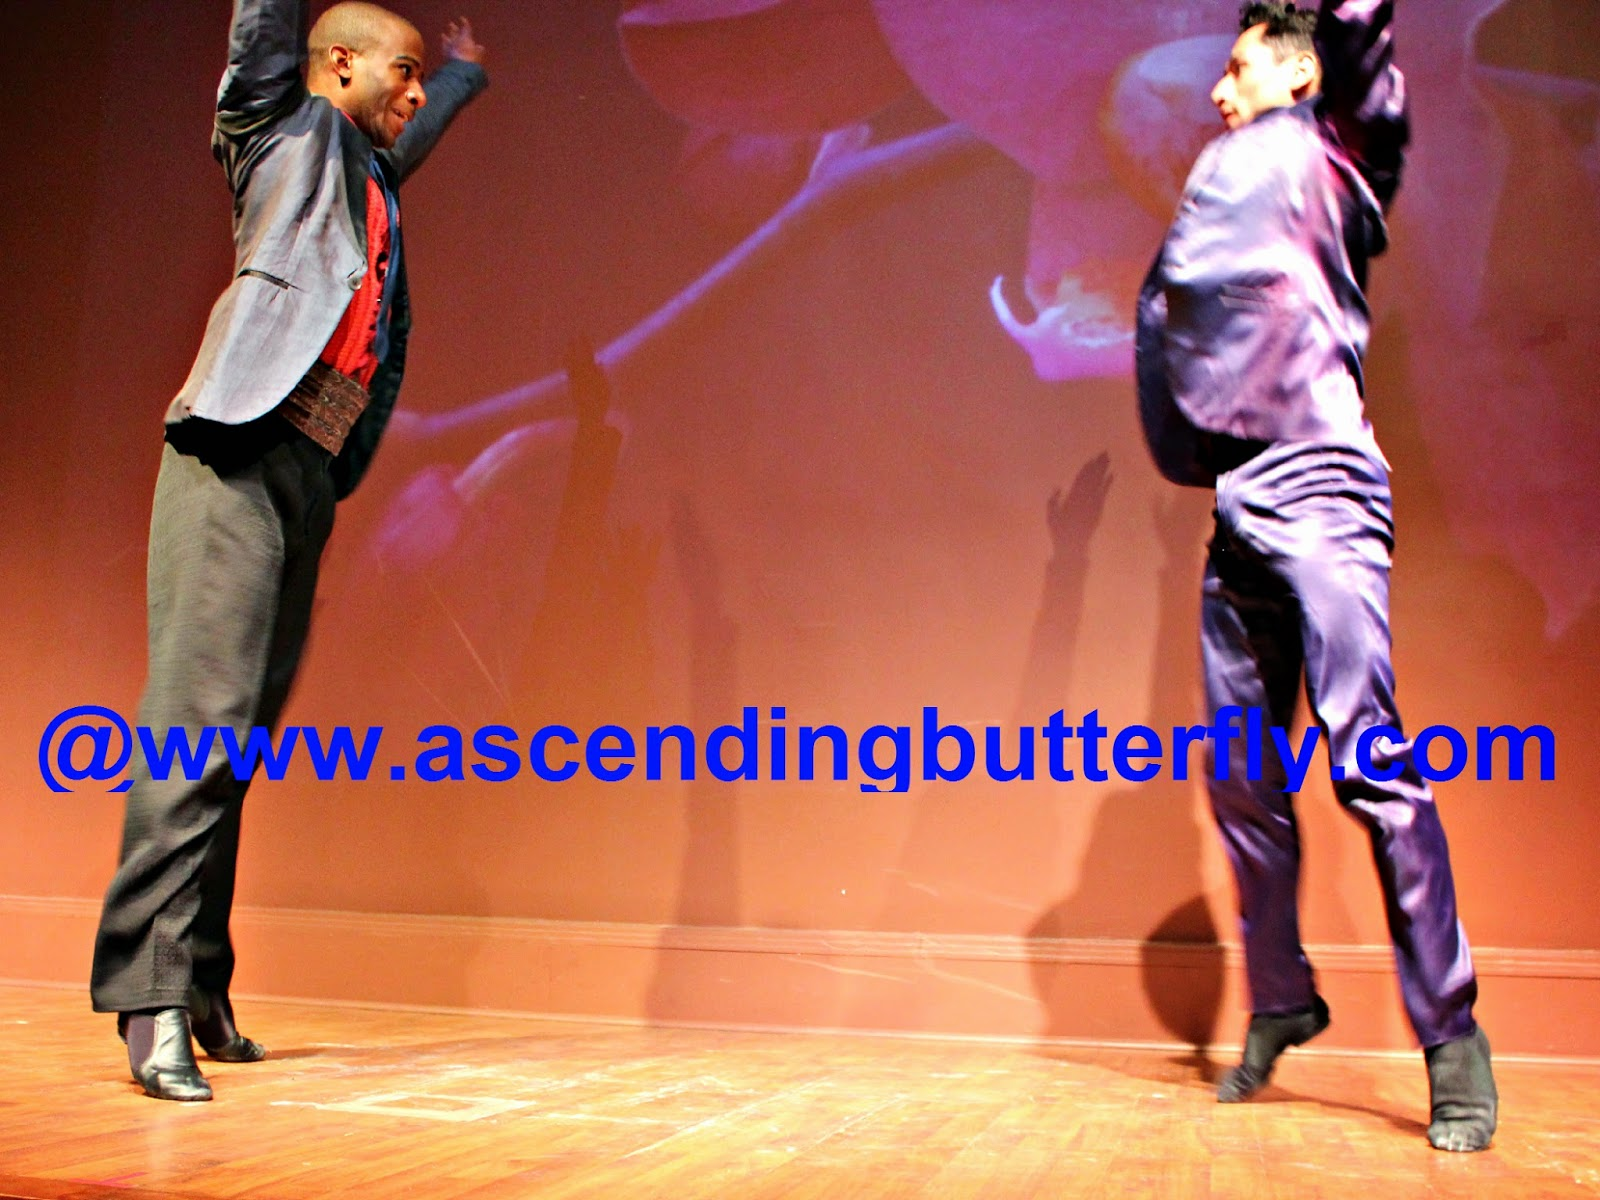 Ballet Hispanico BHdos, Dancer, Left: Christopher Wilson and Right: Nicolay Espitia, in mid air!